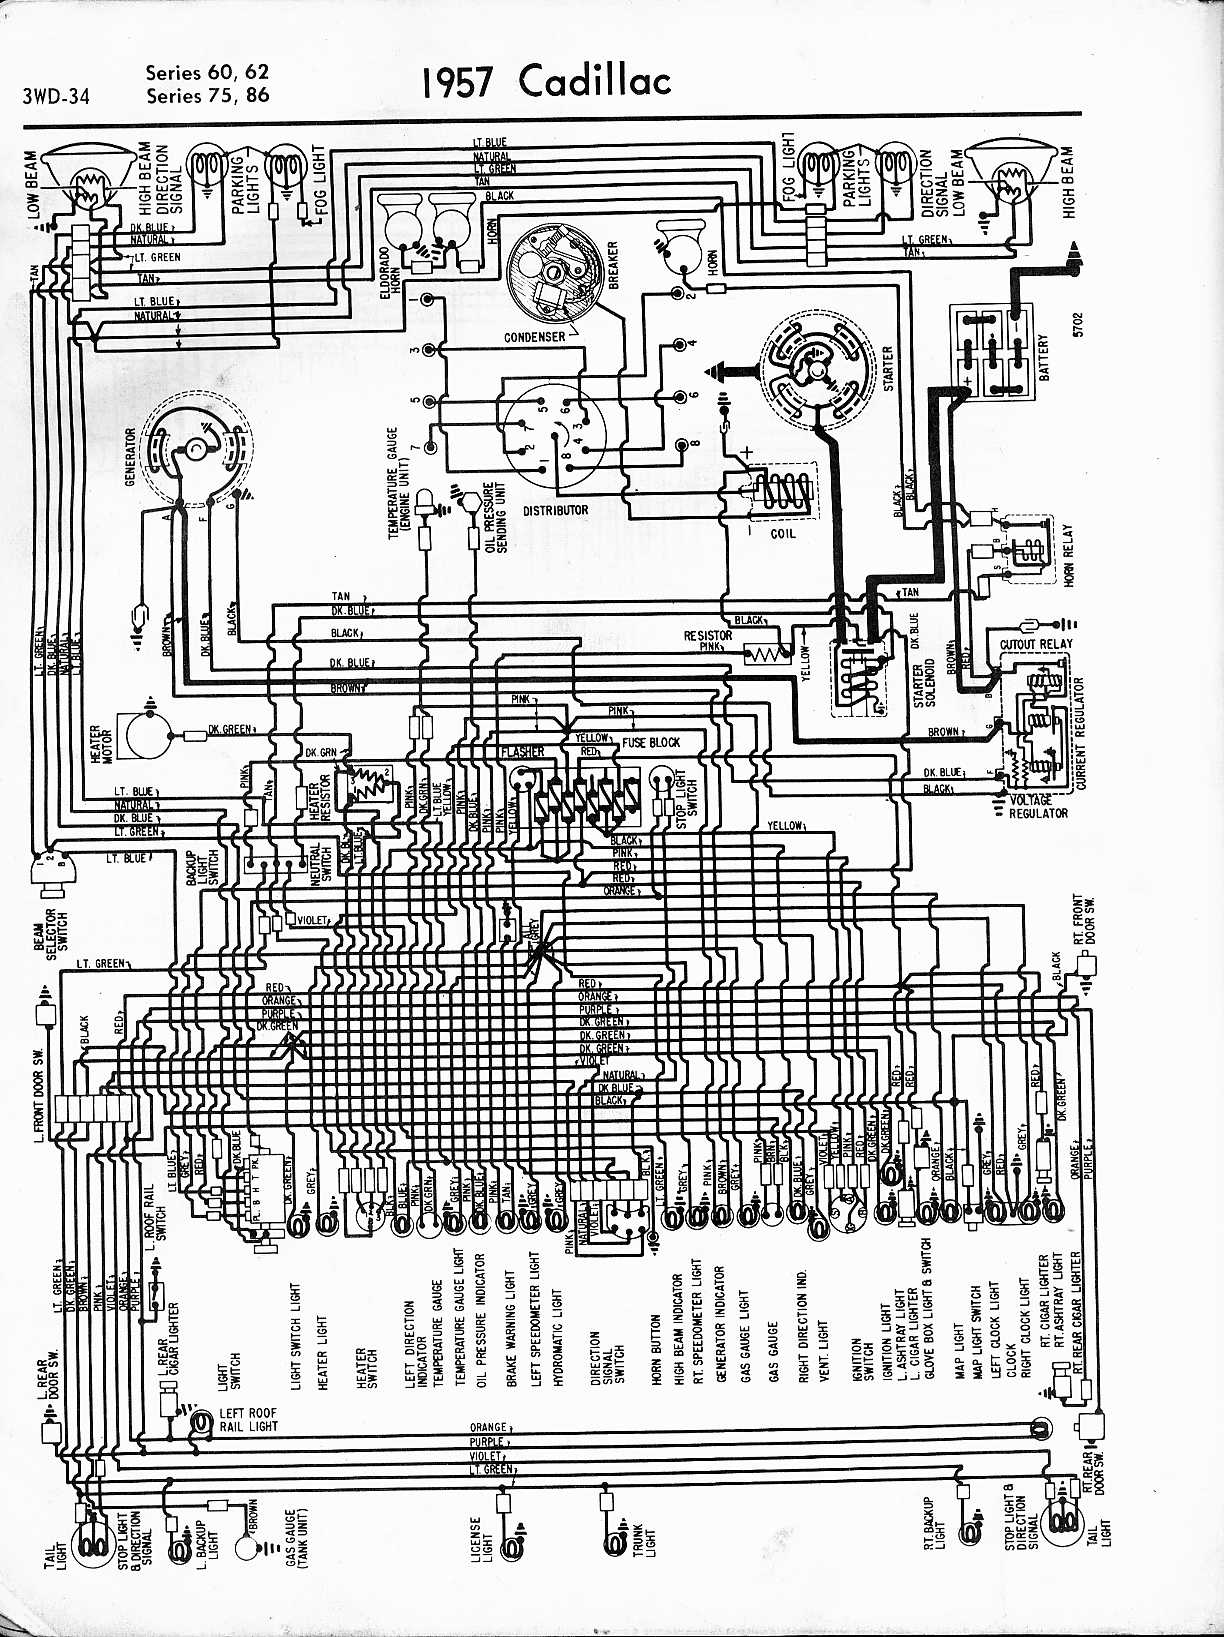 volvo fog lights wiring diagram my new project: 1956 cadillac sedan deville resurrection ...